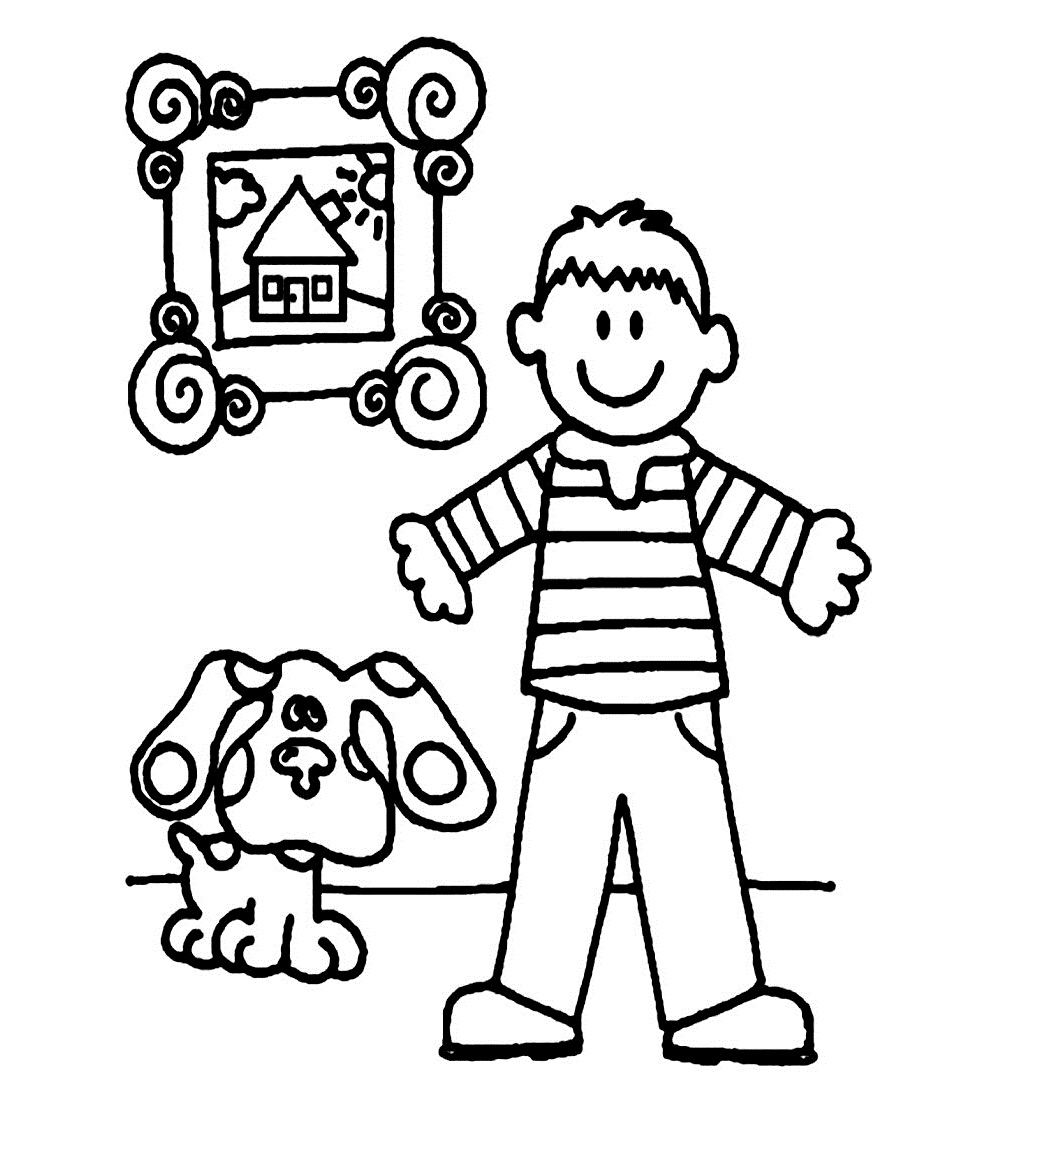 coloring sheets for boys free printable boy coloring pages for kids coloring boys sheets for